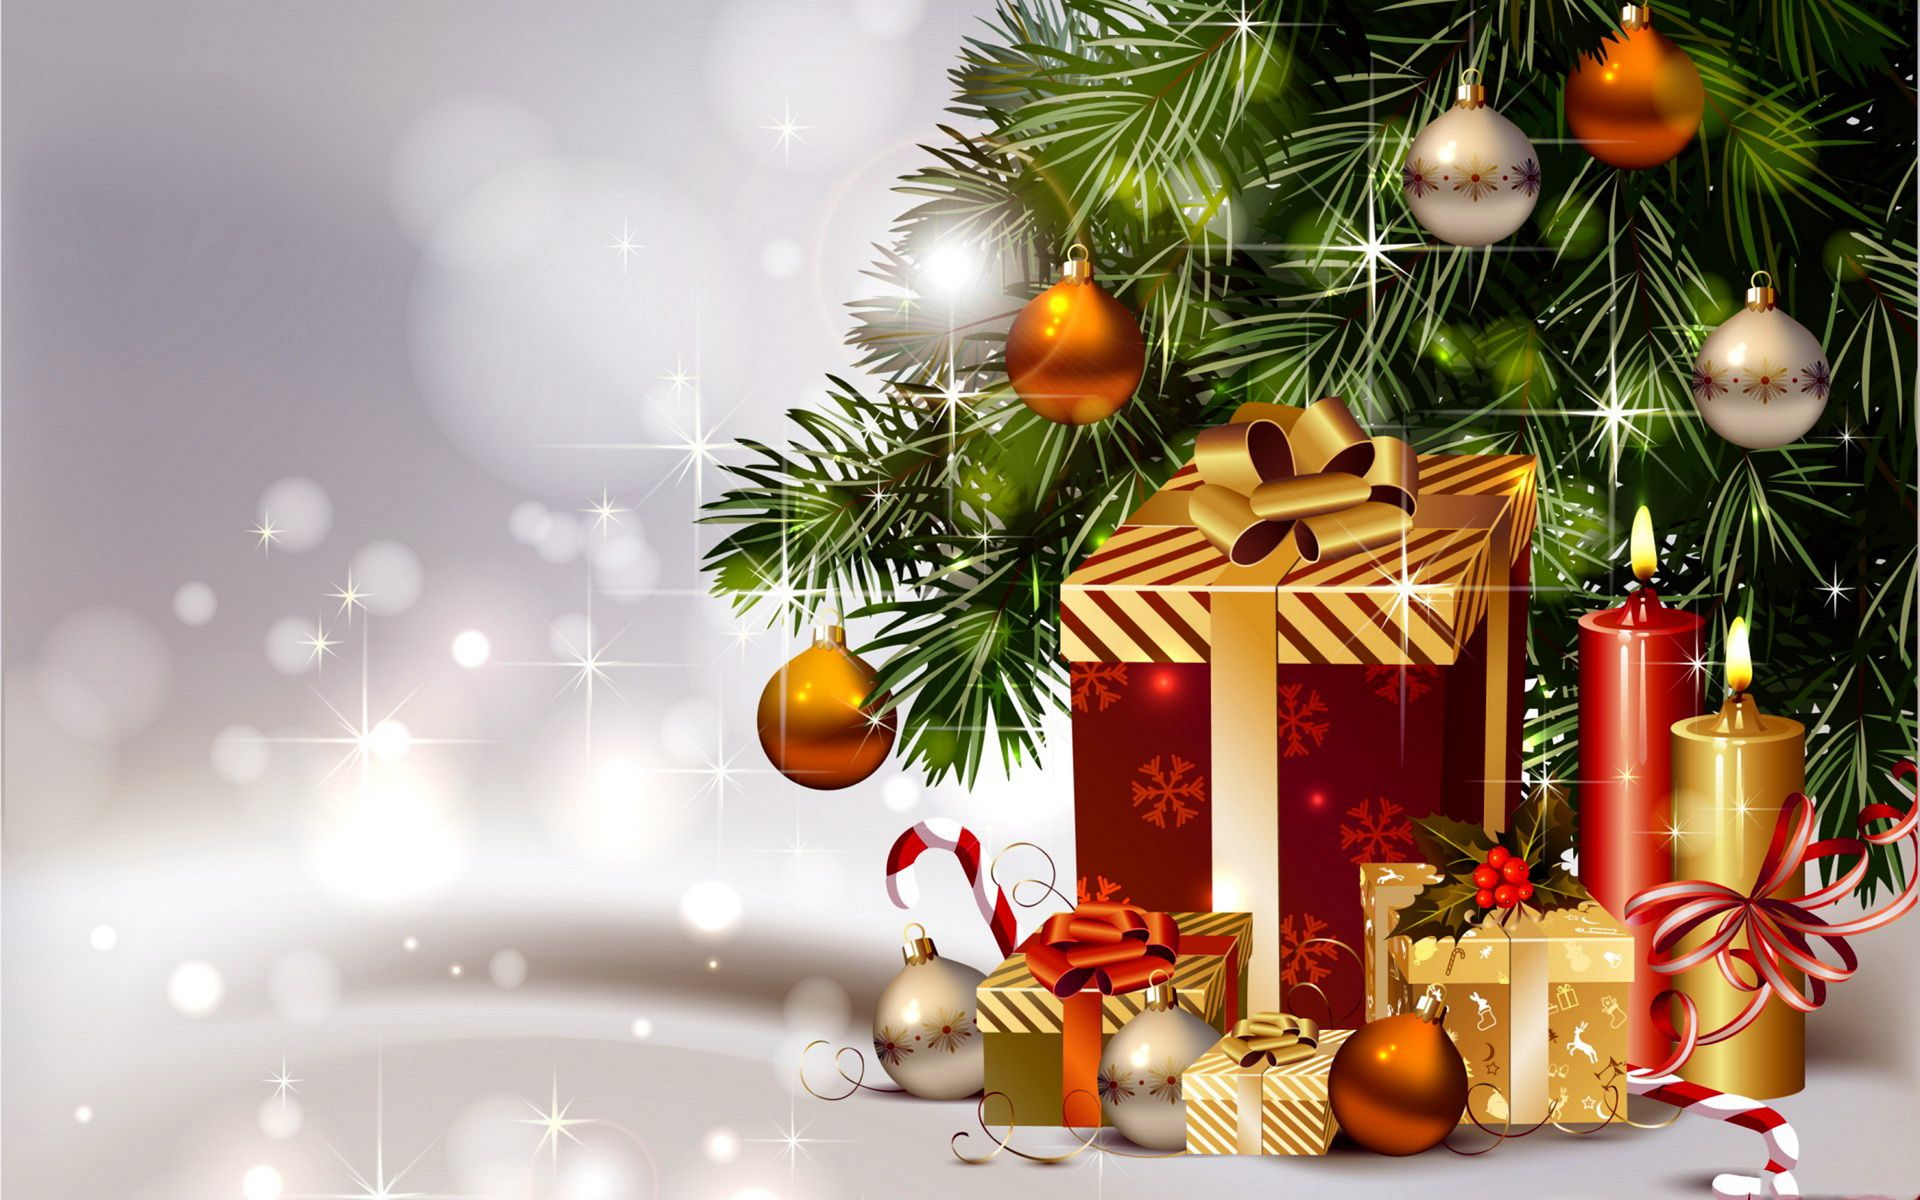 merry-christmas-hd-wallpaper-4-awesome-desktop-wallpapers